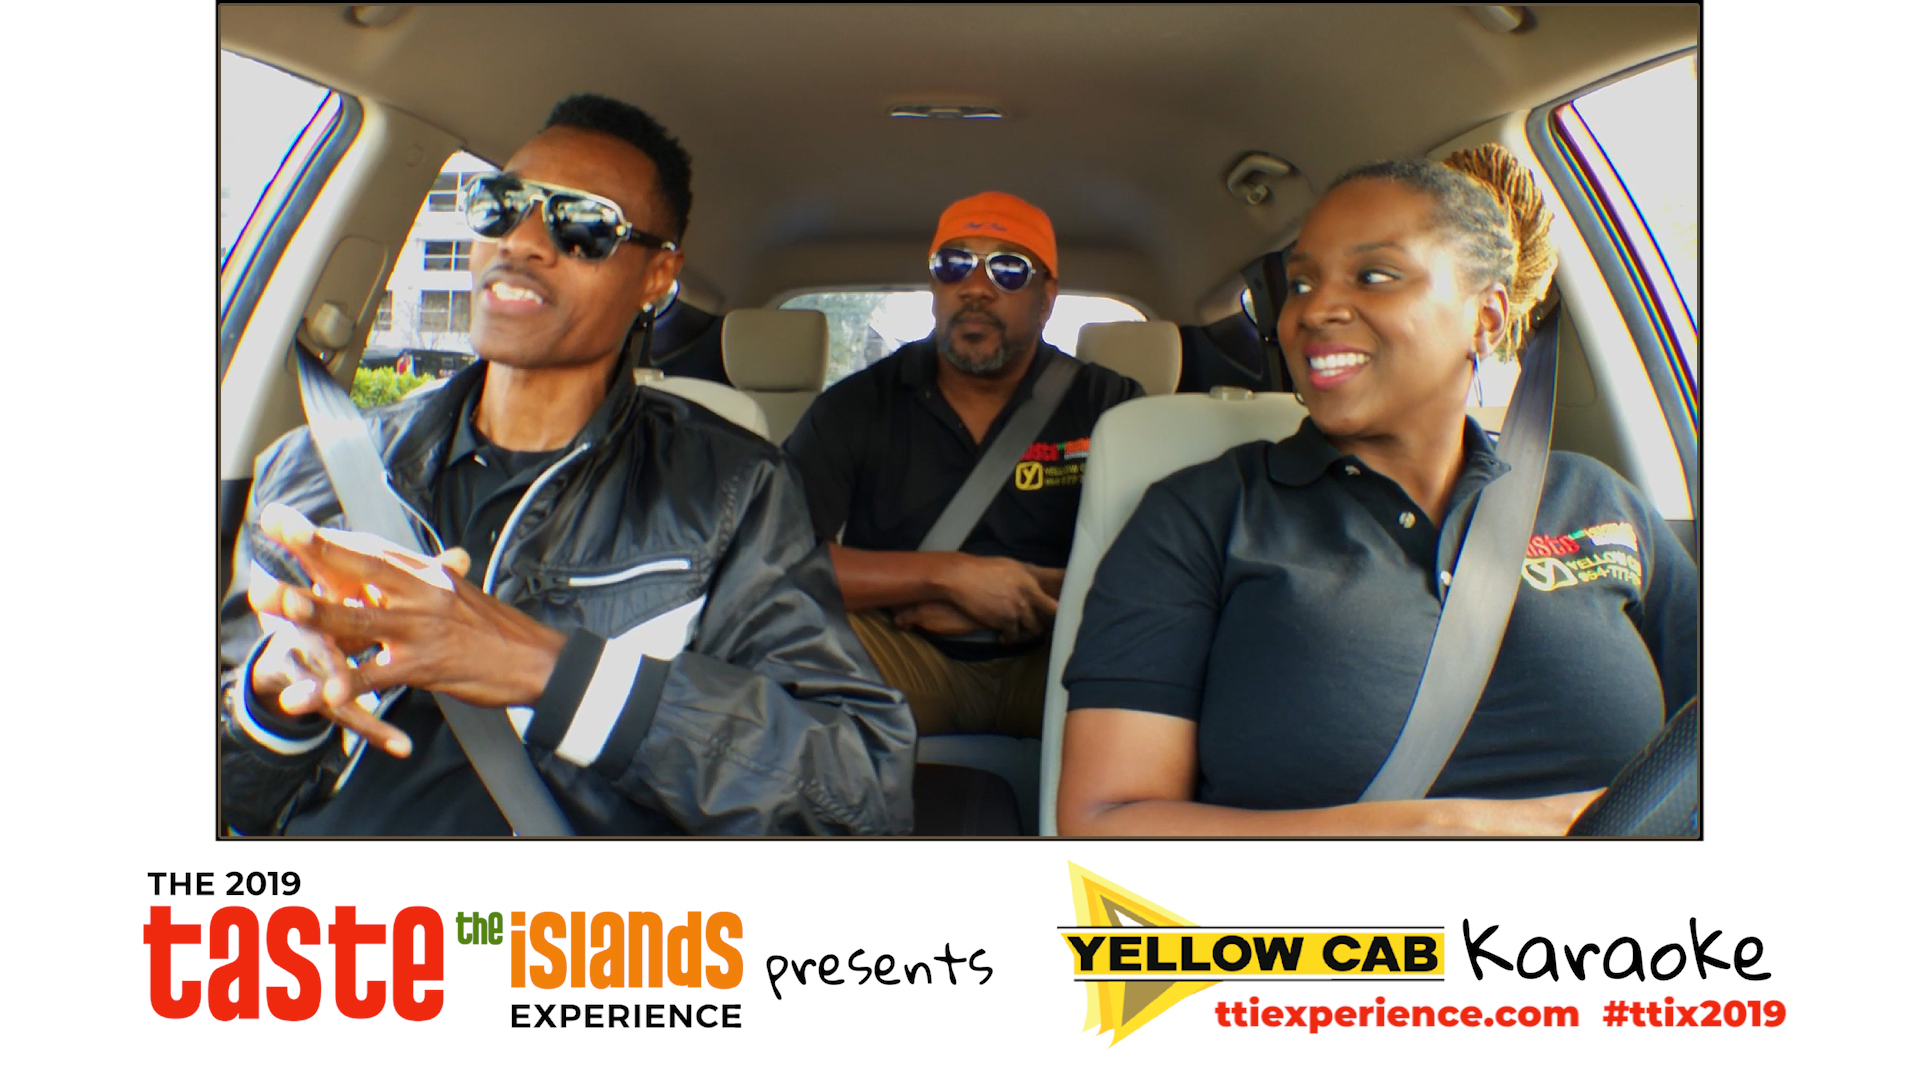 TTIX partners with Jamaican entertainers to present 'Yellow Cab Karaoke' web series